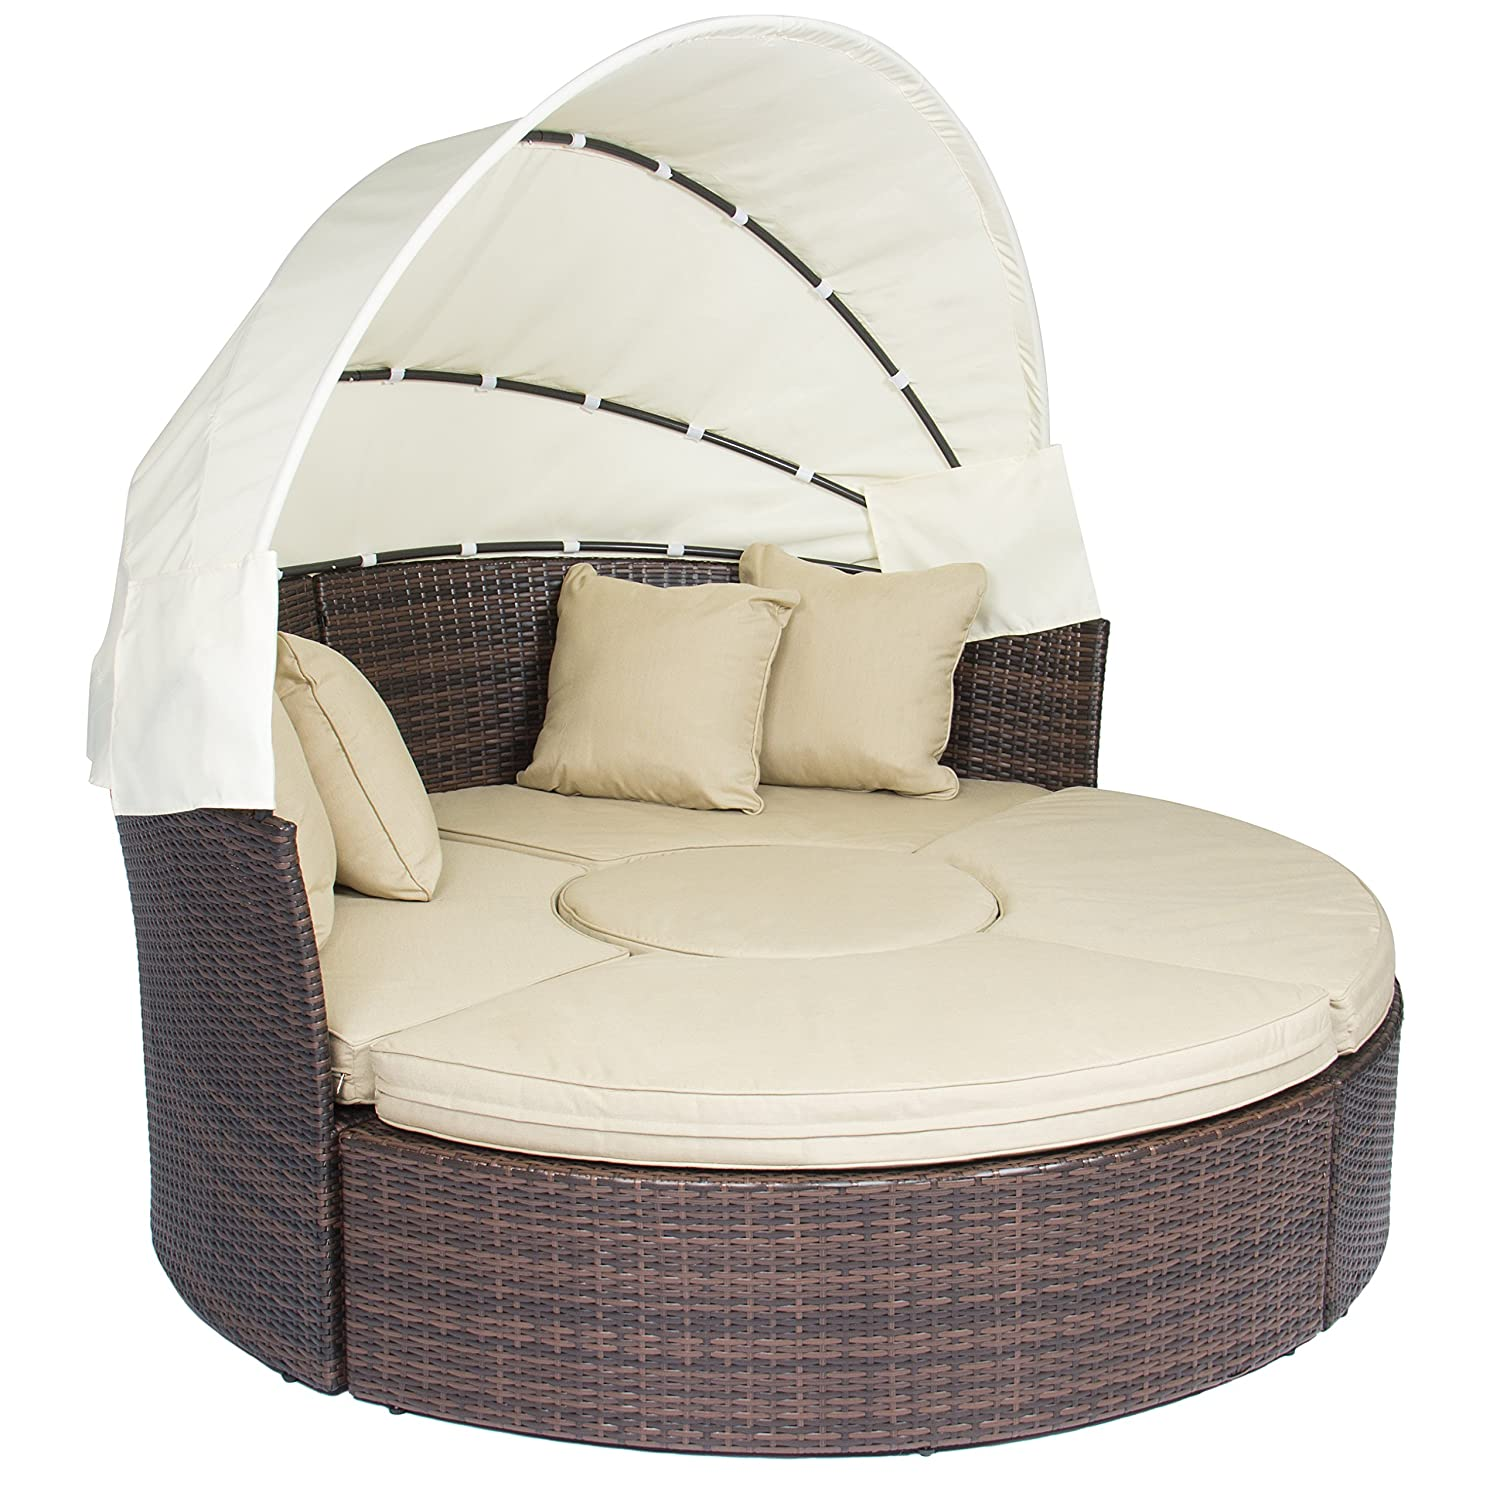 Amazon Outdoor Patio Sofa Furniture Round Retractable Canopy Daybed Brown Wicker Rattan Garden